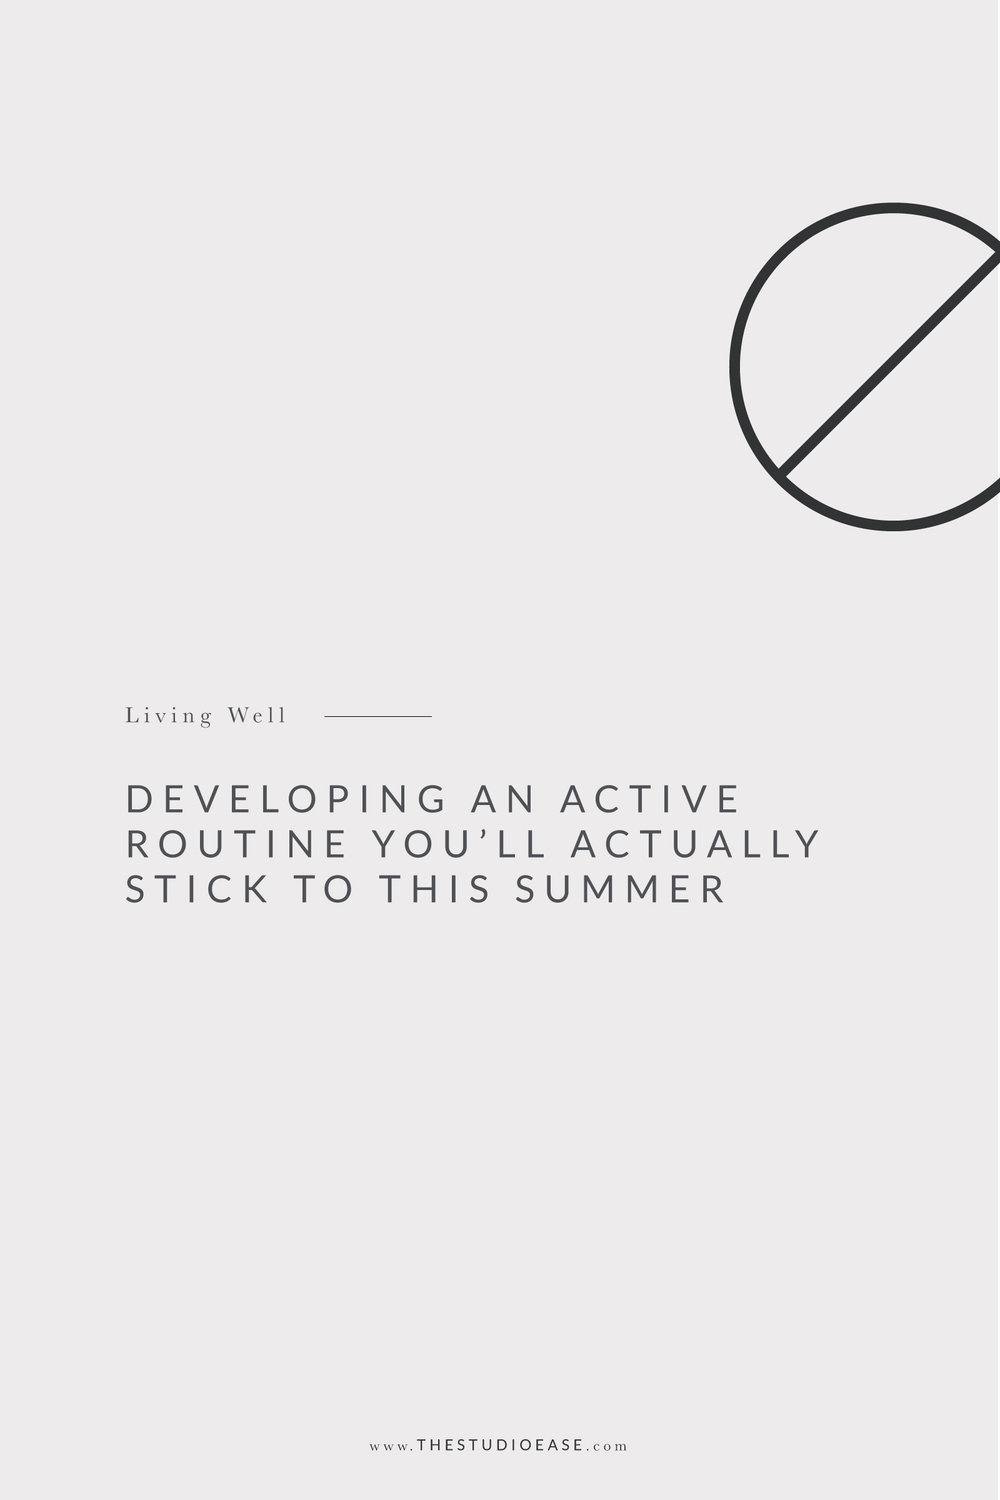 With busy summer schedules, it feels almost impossible to find an active routine that you can stick to and actually enjoy. You can google so many work out plans and try to puzzle together how you're going to commit yourself to working out with your busy Summer schedule. We are sharing a few tips to help you develop a more active, healthy routine this Summer that is ever-changing and easy to fit into any busy schedule.